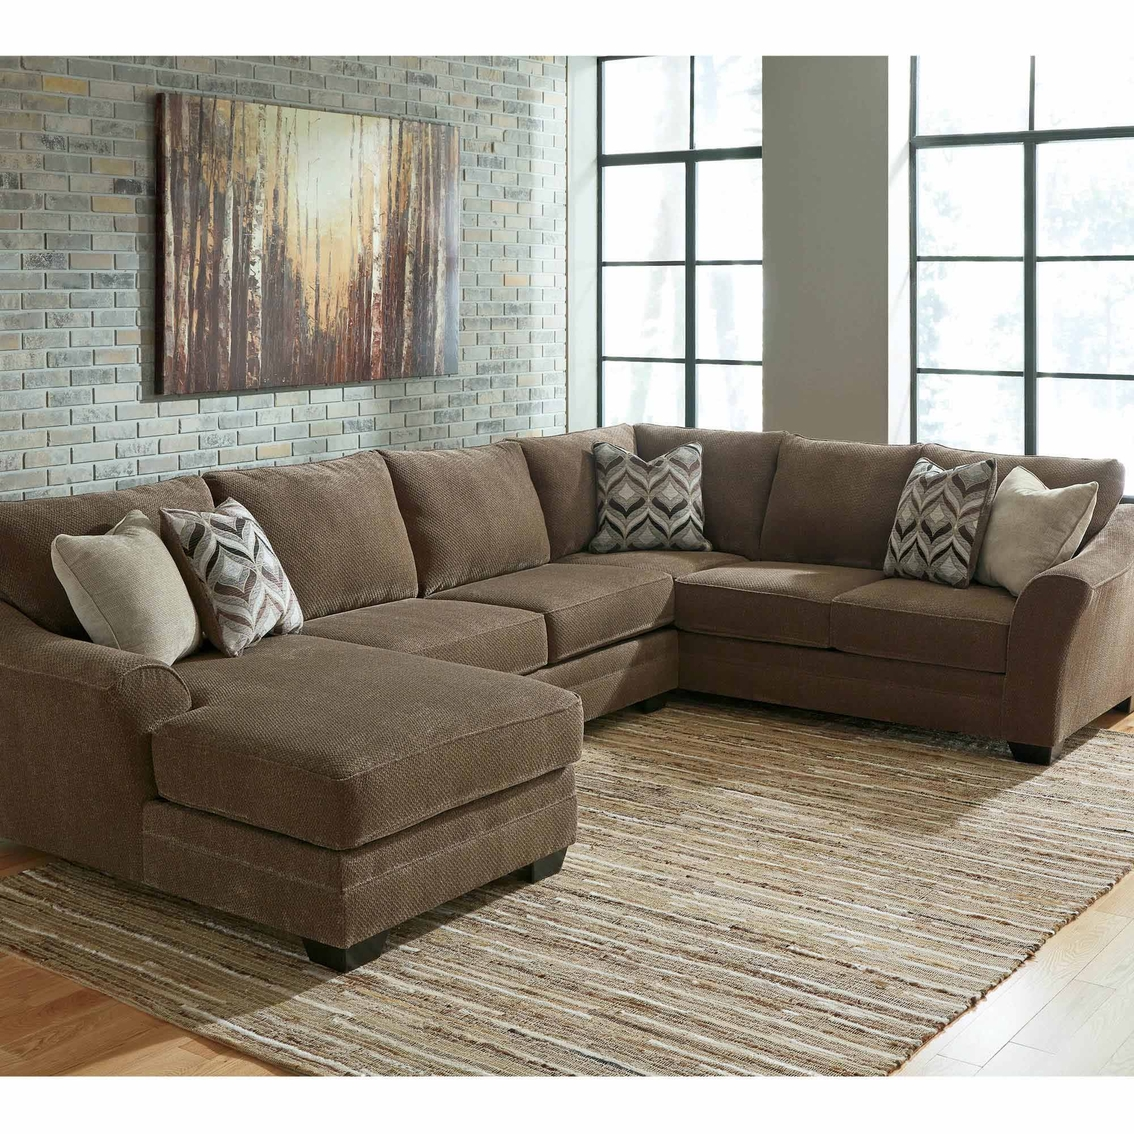 Benchcraft justyna 3 pc sectional with laf corner chaise for 3pc sectional with chaise